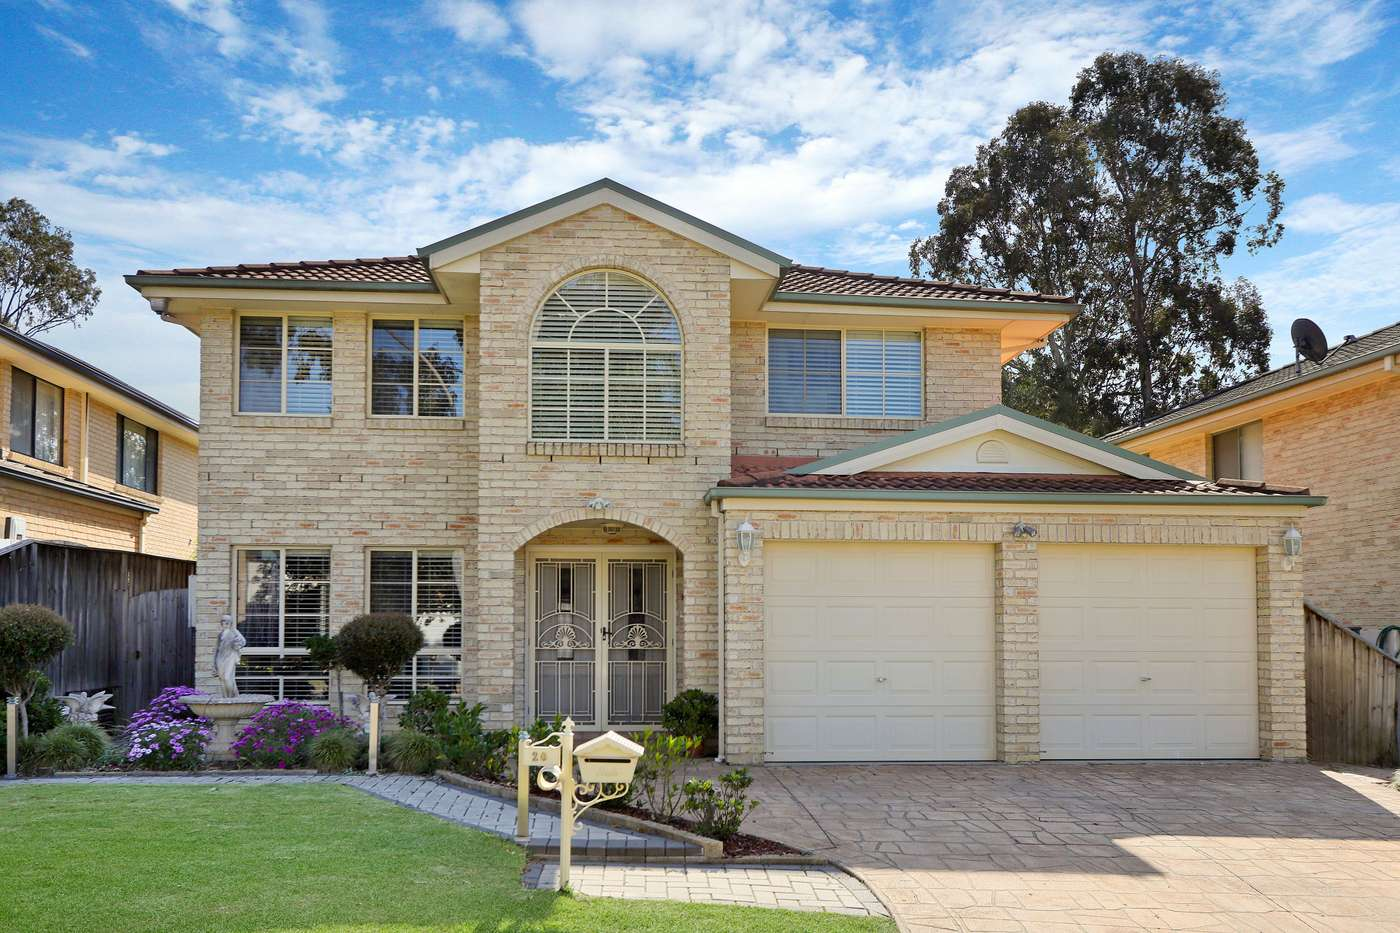 Main view of Homely house listing, 20 Forest Crescent, Beaumont Hills, NSW 2155